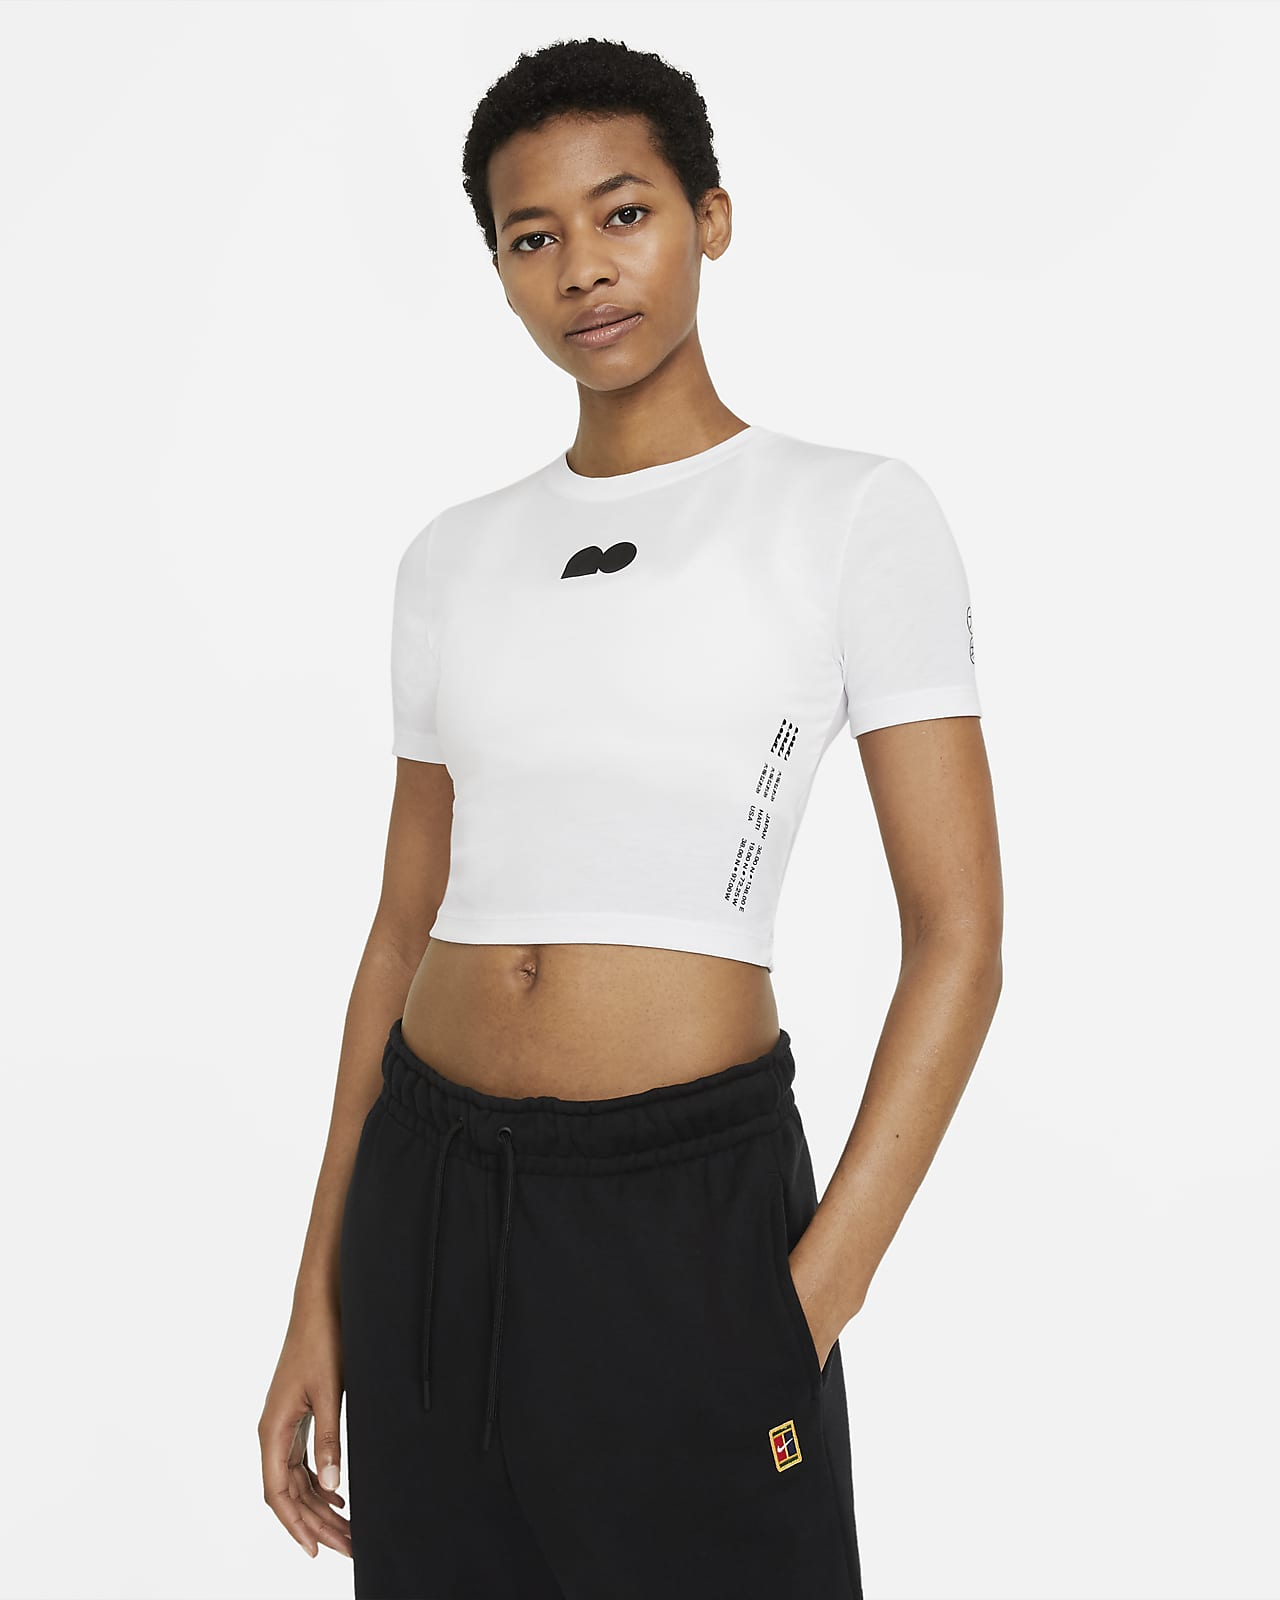 Naomi Osaka Cropped Tennis T-Shirt